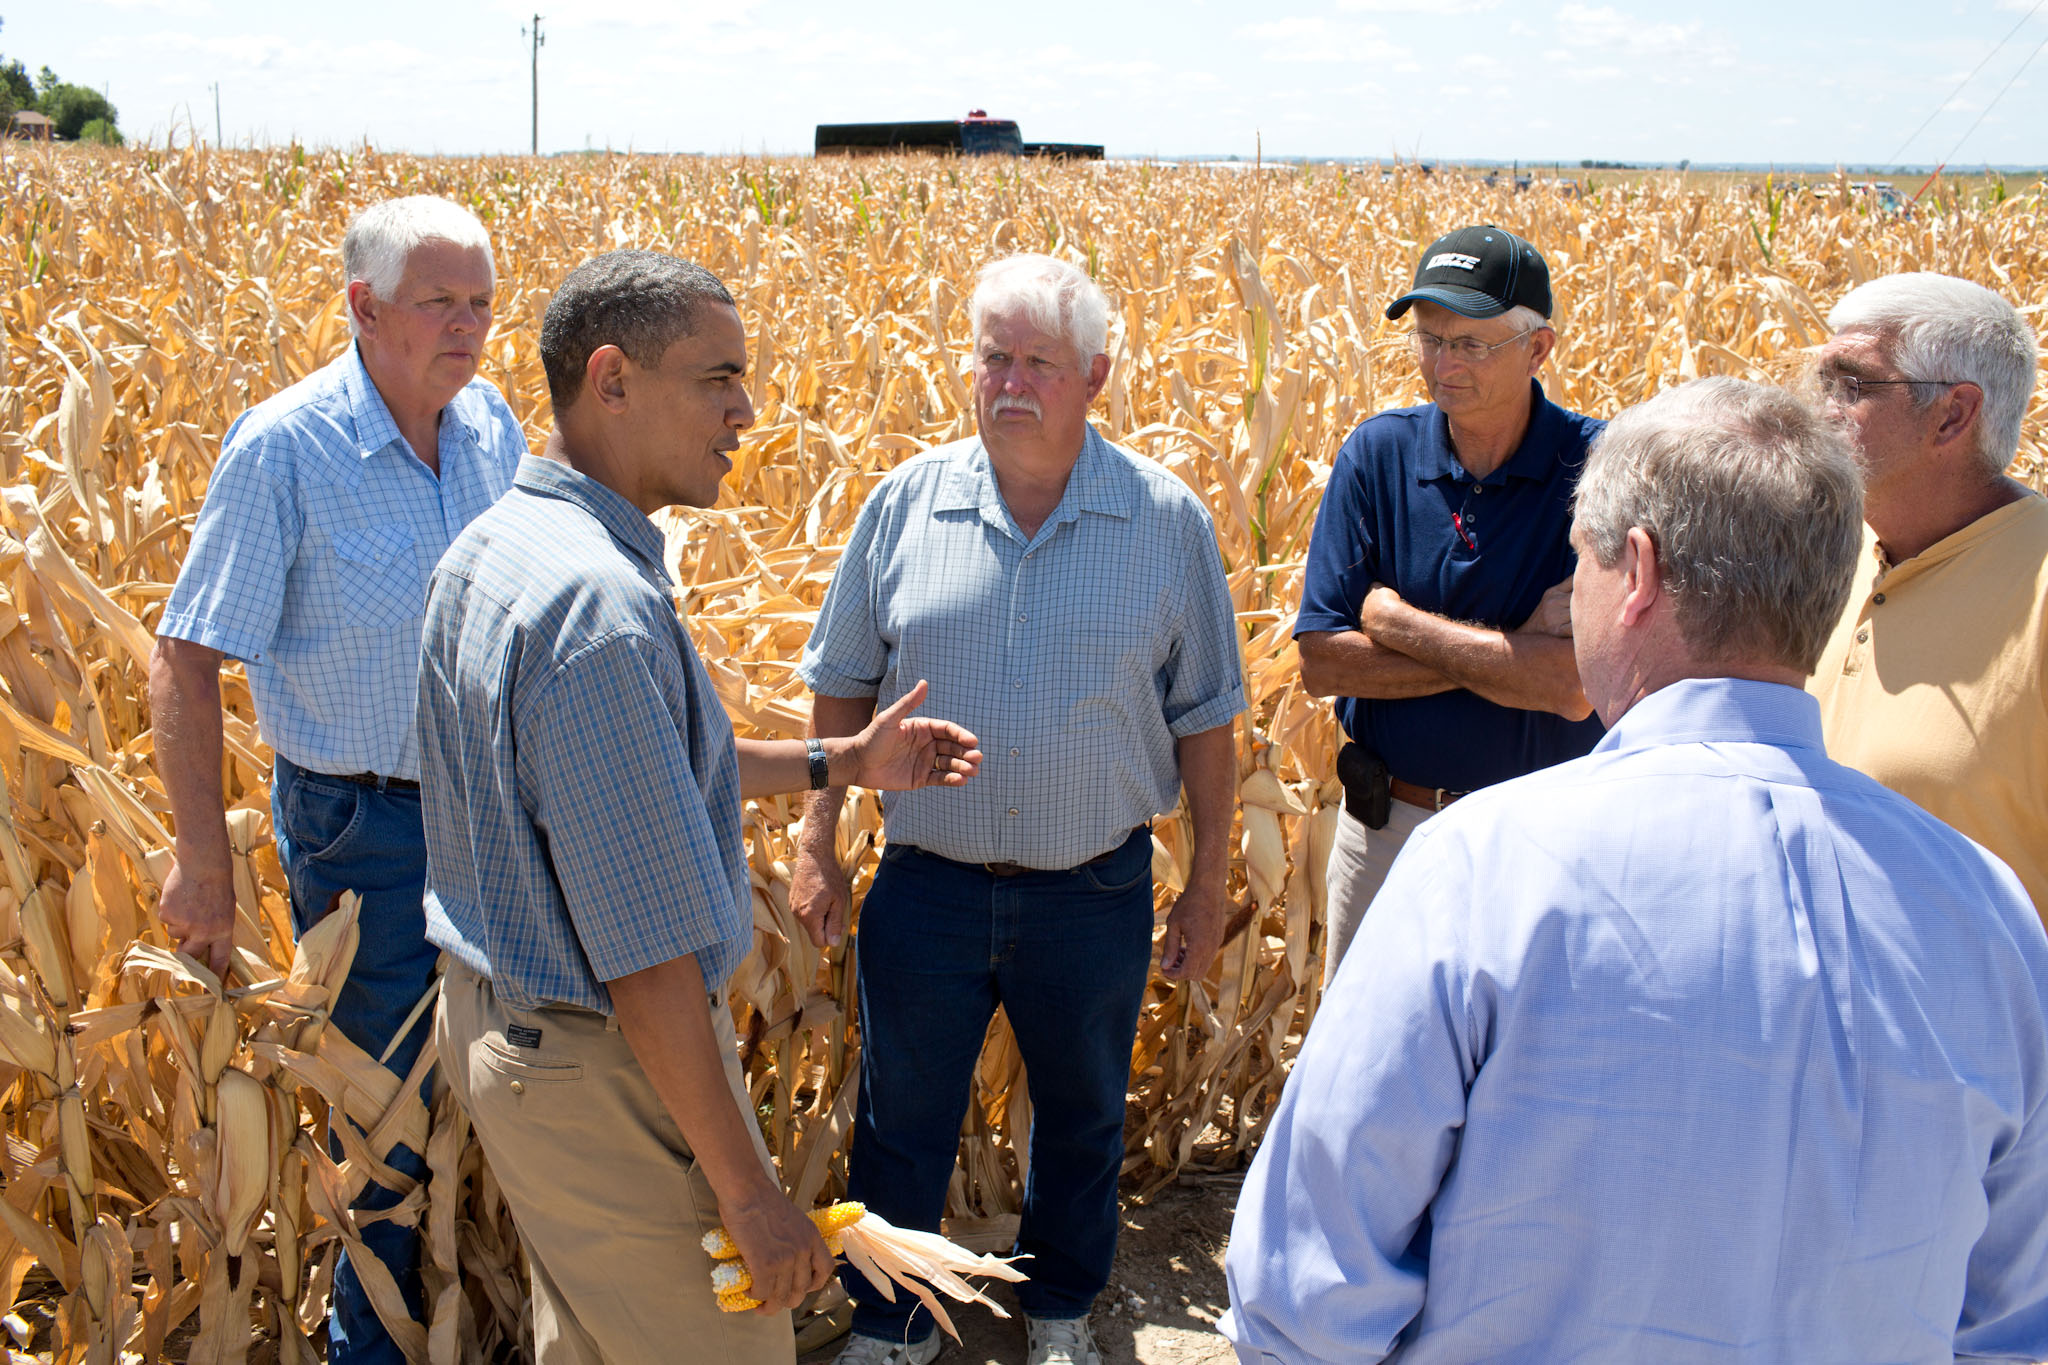 President Barack Obama tours the McIntosh family farm (August 13, 2012)